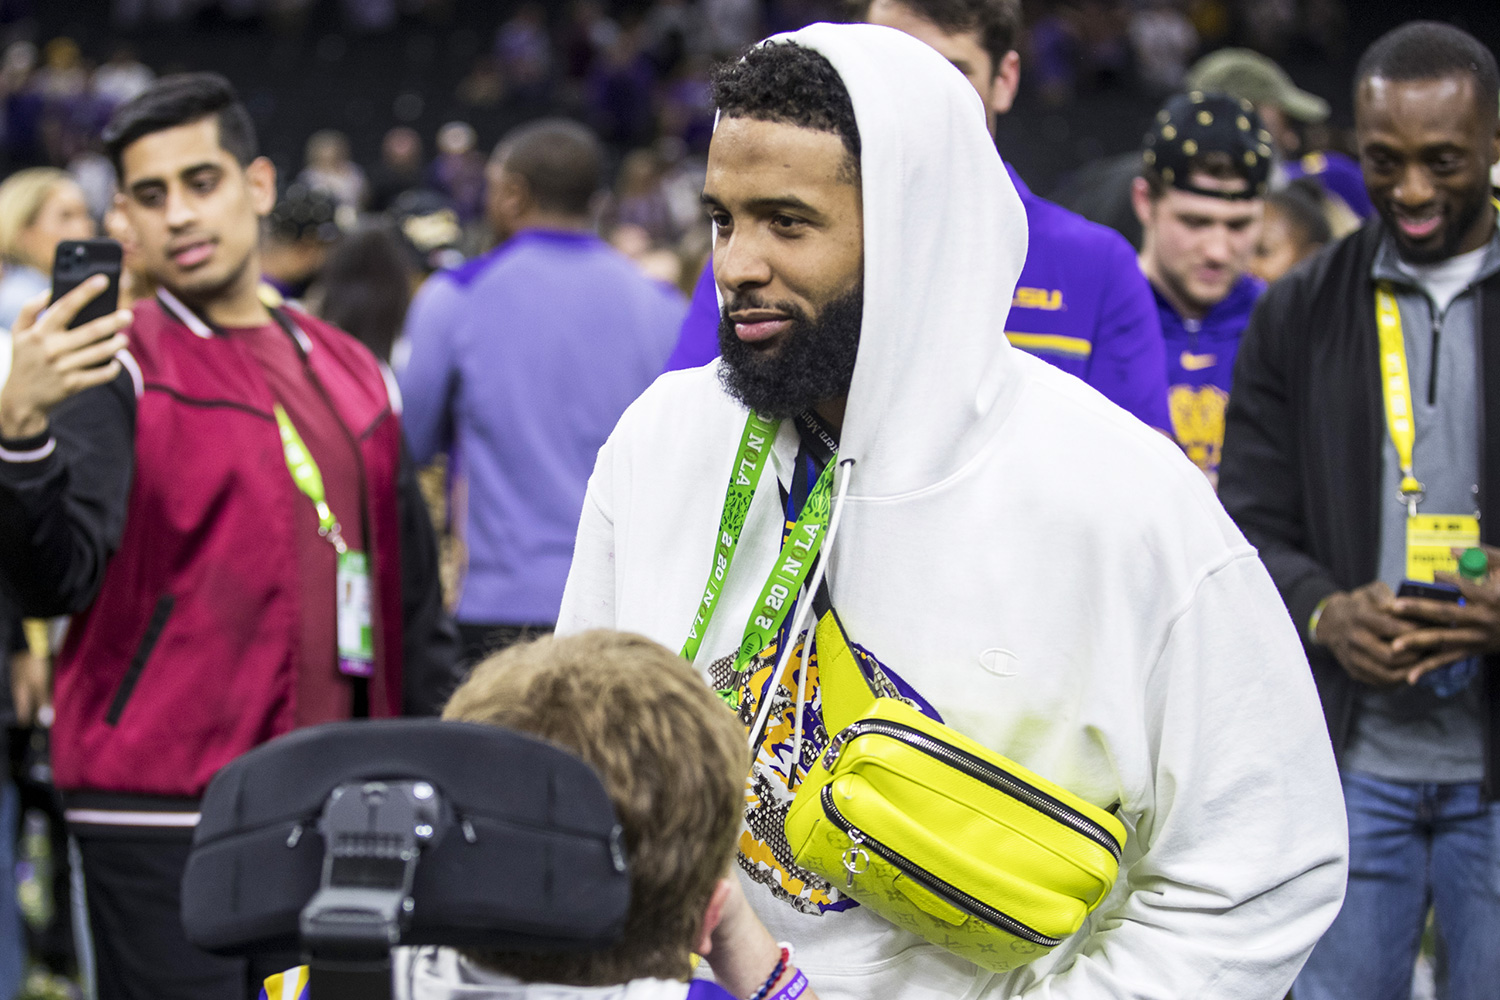 Odell Beckham Jr. after College Football Playoff National Championship game action between the Clemson Tigers and the LSU Tigers at Mercedes-Benz Superdome in New Orleans, Louisiana. LSU defeated Clemson 42-25 NCAA Football CFP National Championship Clemson vs LSU, USA - 13 Jan 2020